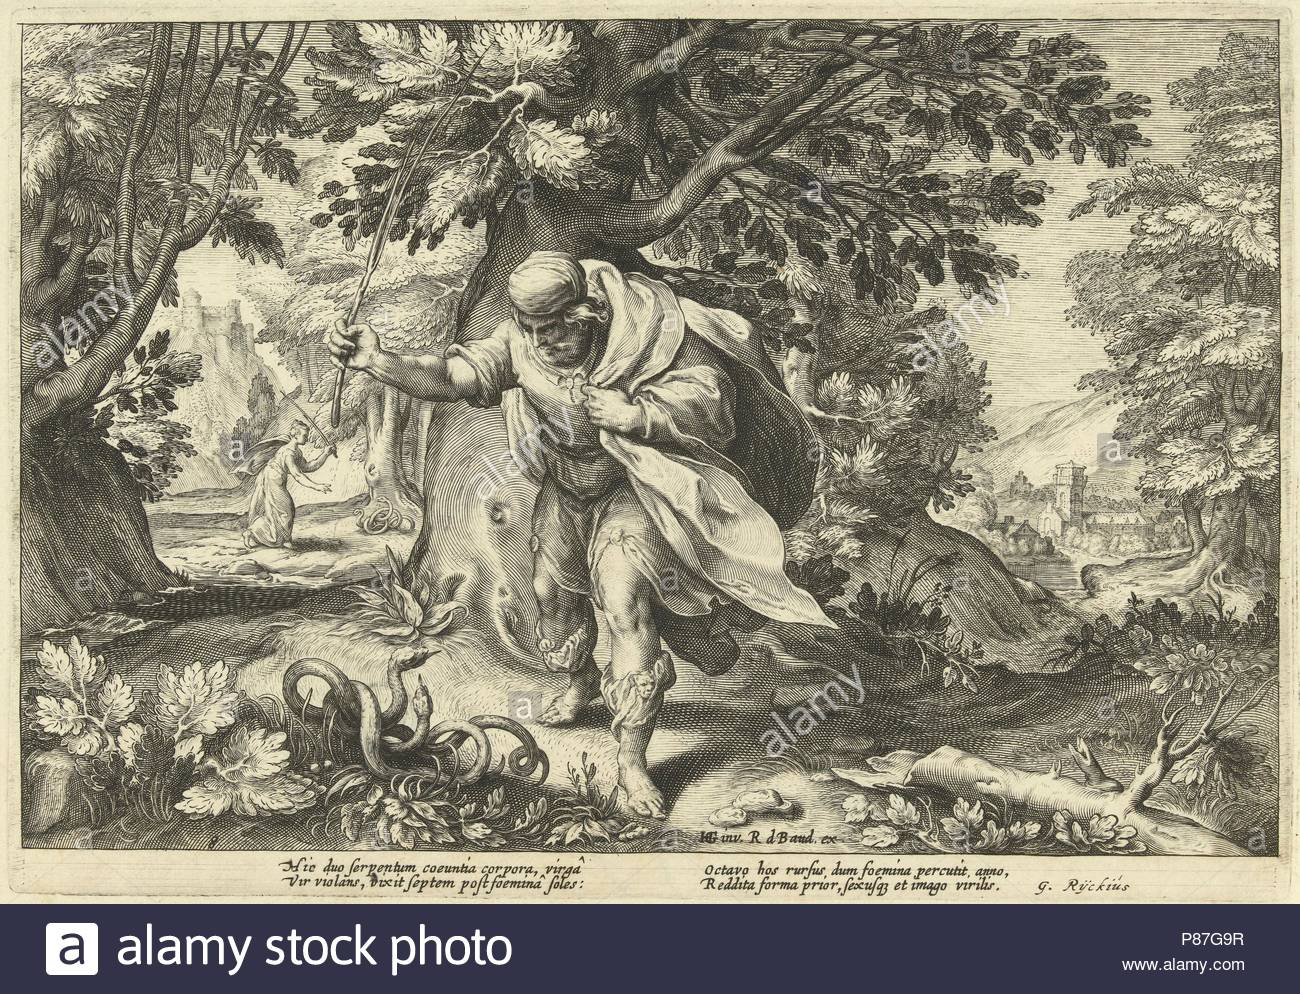 Teiresias stores in a forest two mating snakes. Then he turned into a woman. Seven years later he changed back into a man again after two mating snakes have beaten, part of a series of 52 prints that depict stories from Ovid's Metamorphoses, print maker: Hendrick Goltzius (workshop of), Dating 1615. - Stock Image